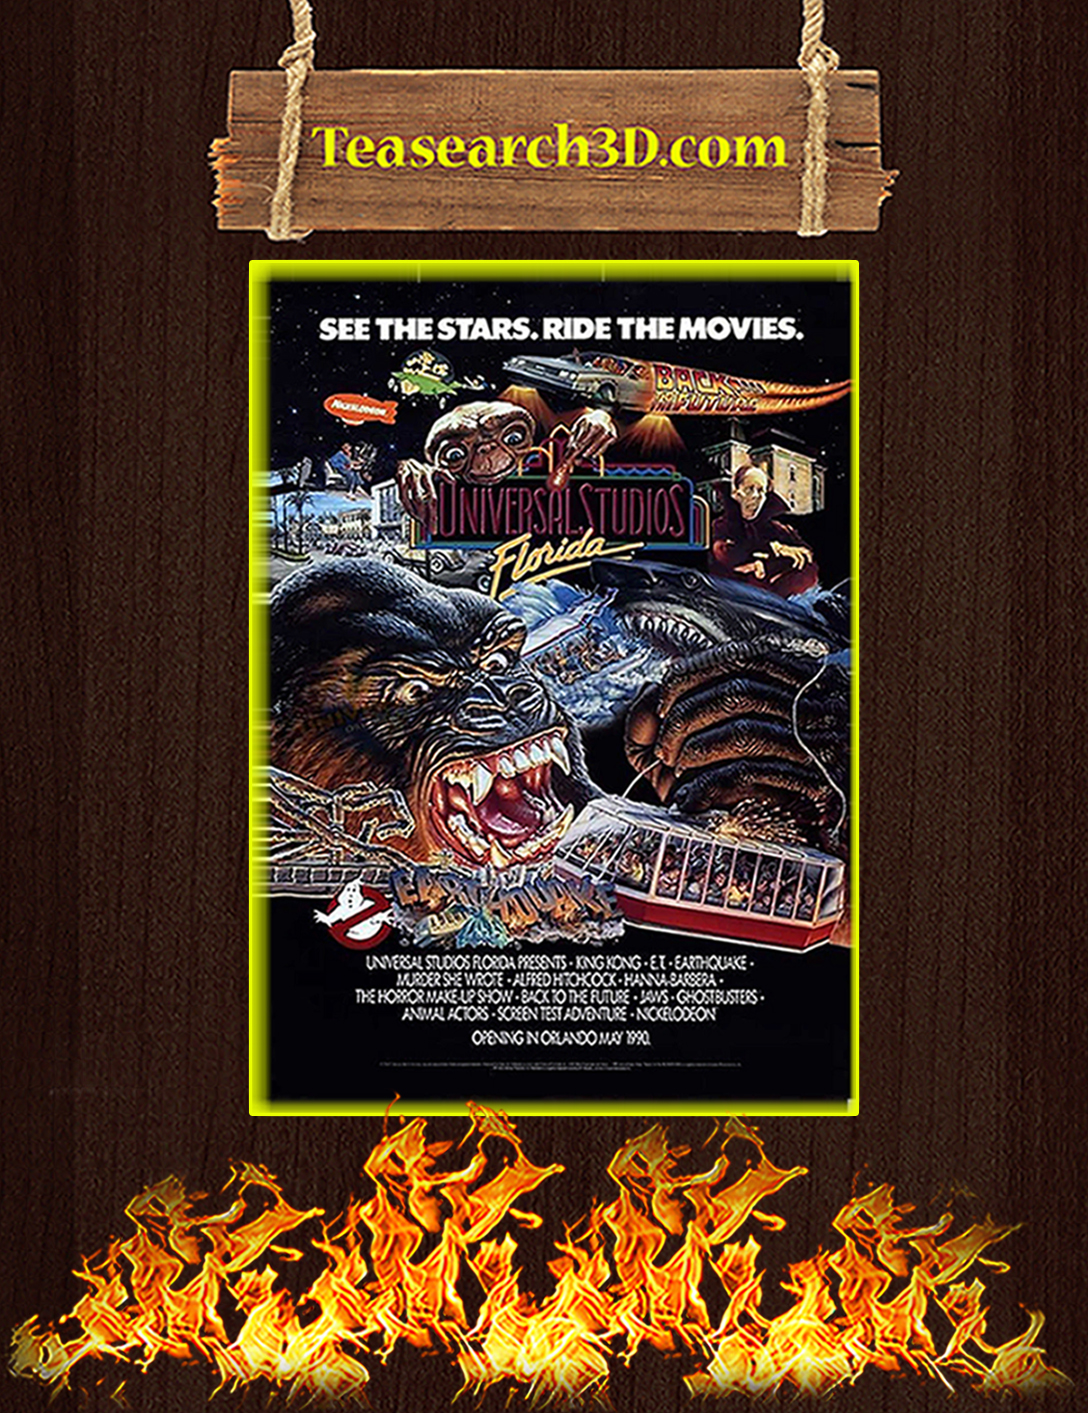 Universal studios see the stars ride the movies poster A2